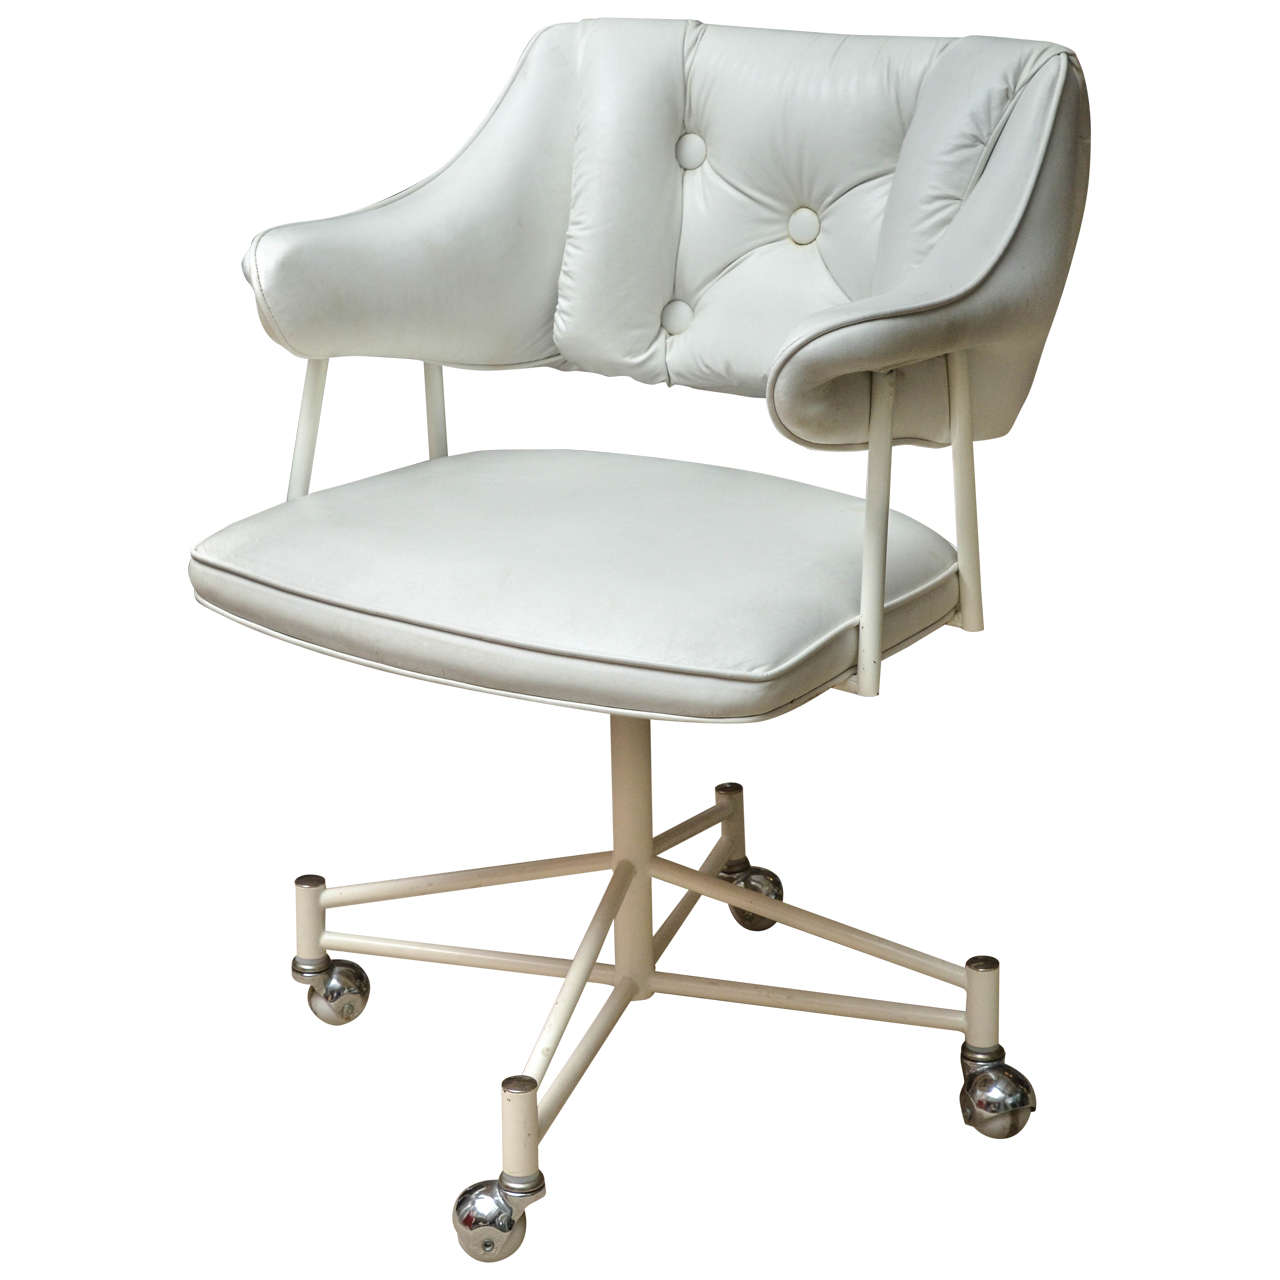 Mid century white leather desk chair on castors at 1stdibs for Desk chair white leather